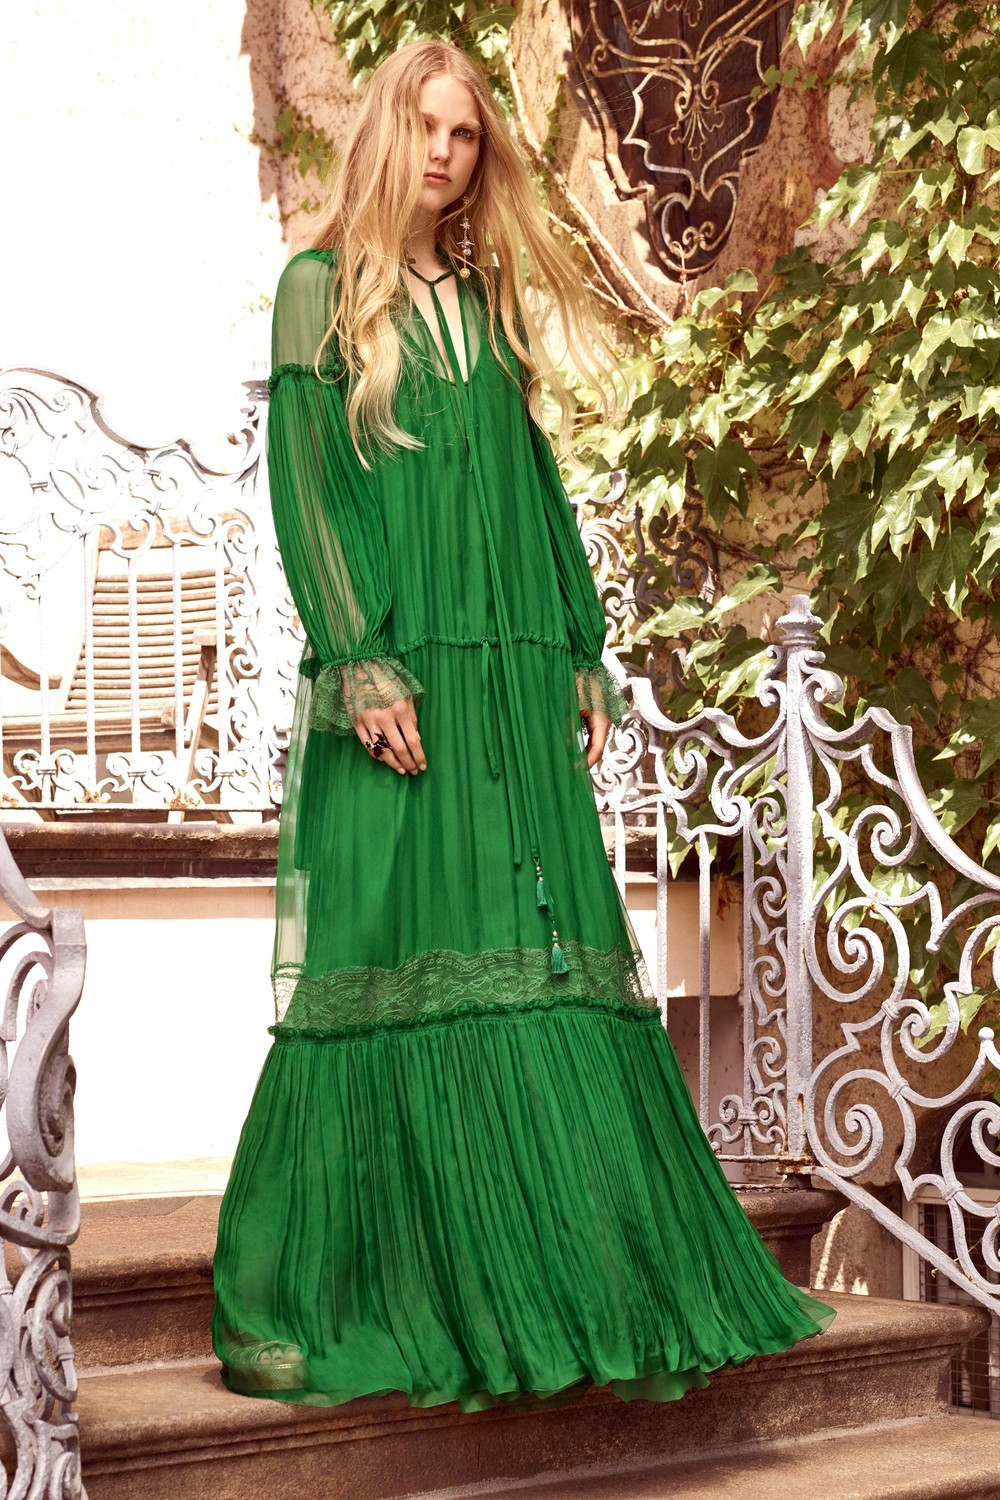 tiered maxi, pleats mixed with lace and all in a beautiful and bold green